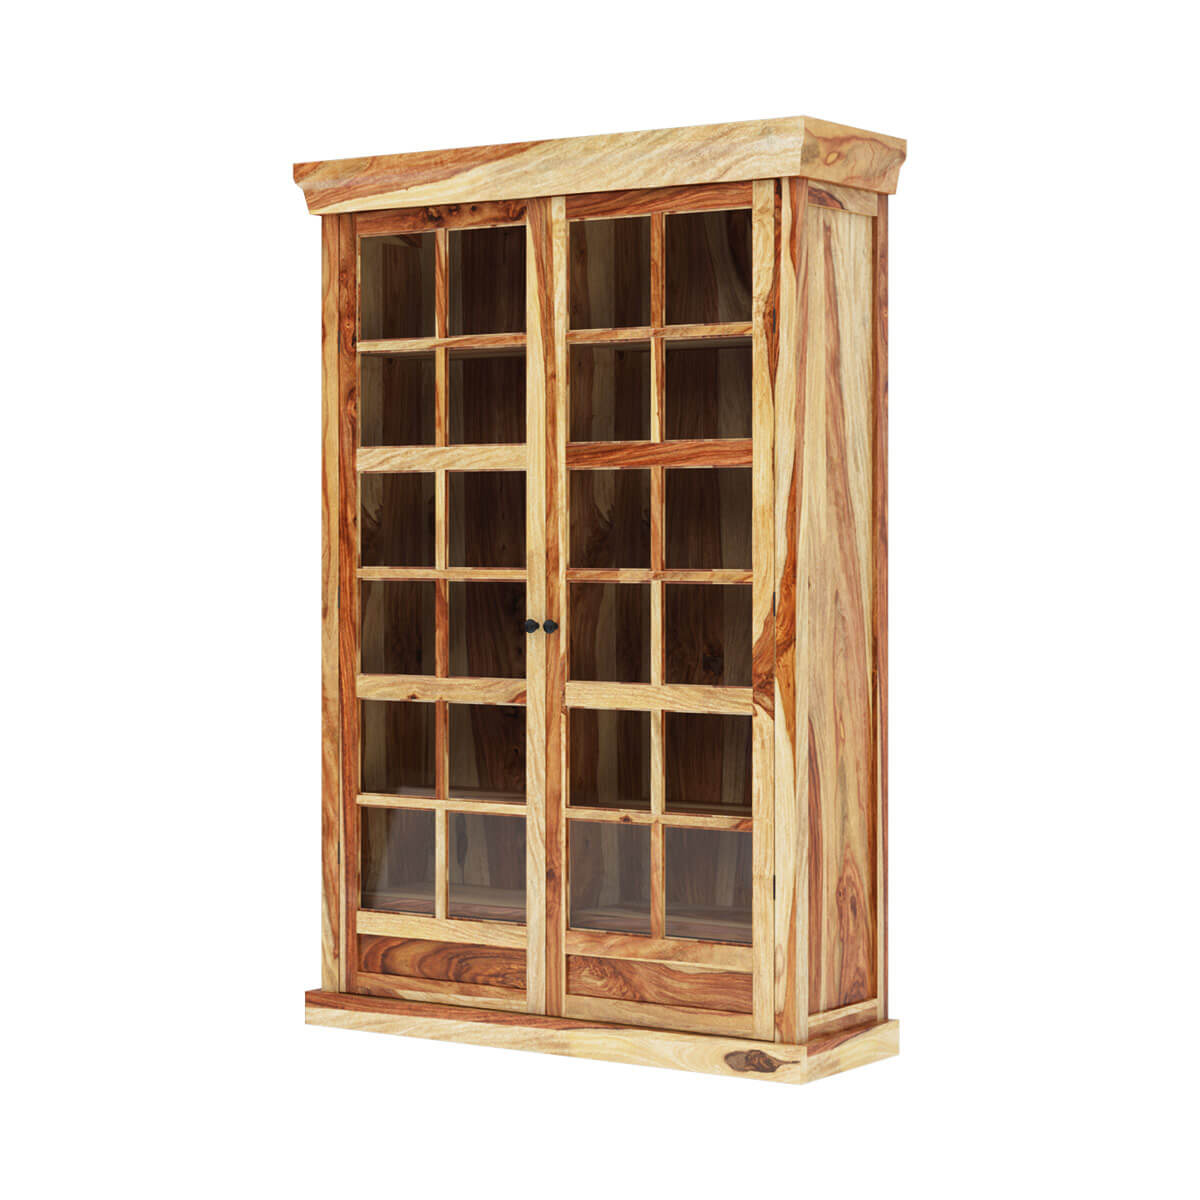 Peoria Storage Peoria Rustic Solid Wood Glass Door Large Storage Cabinet